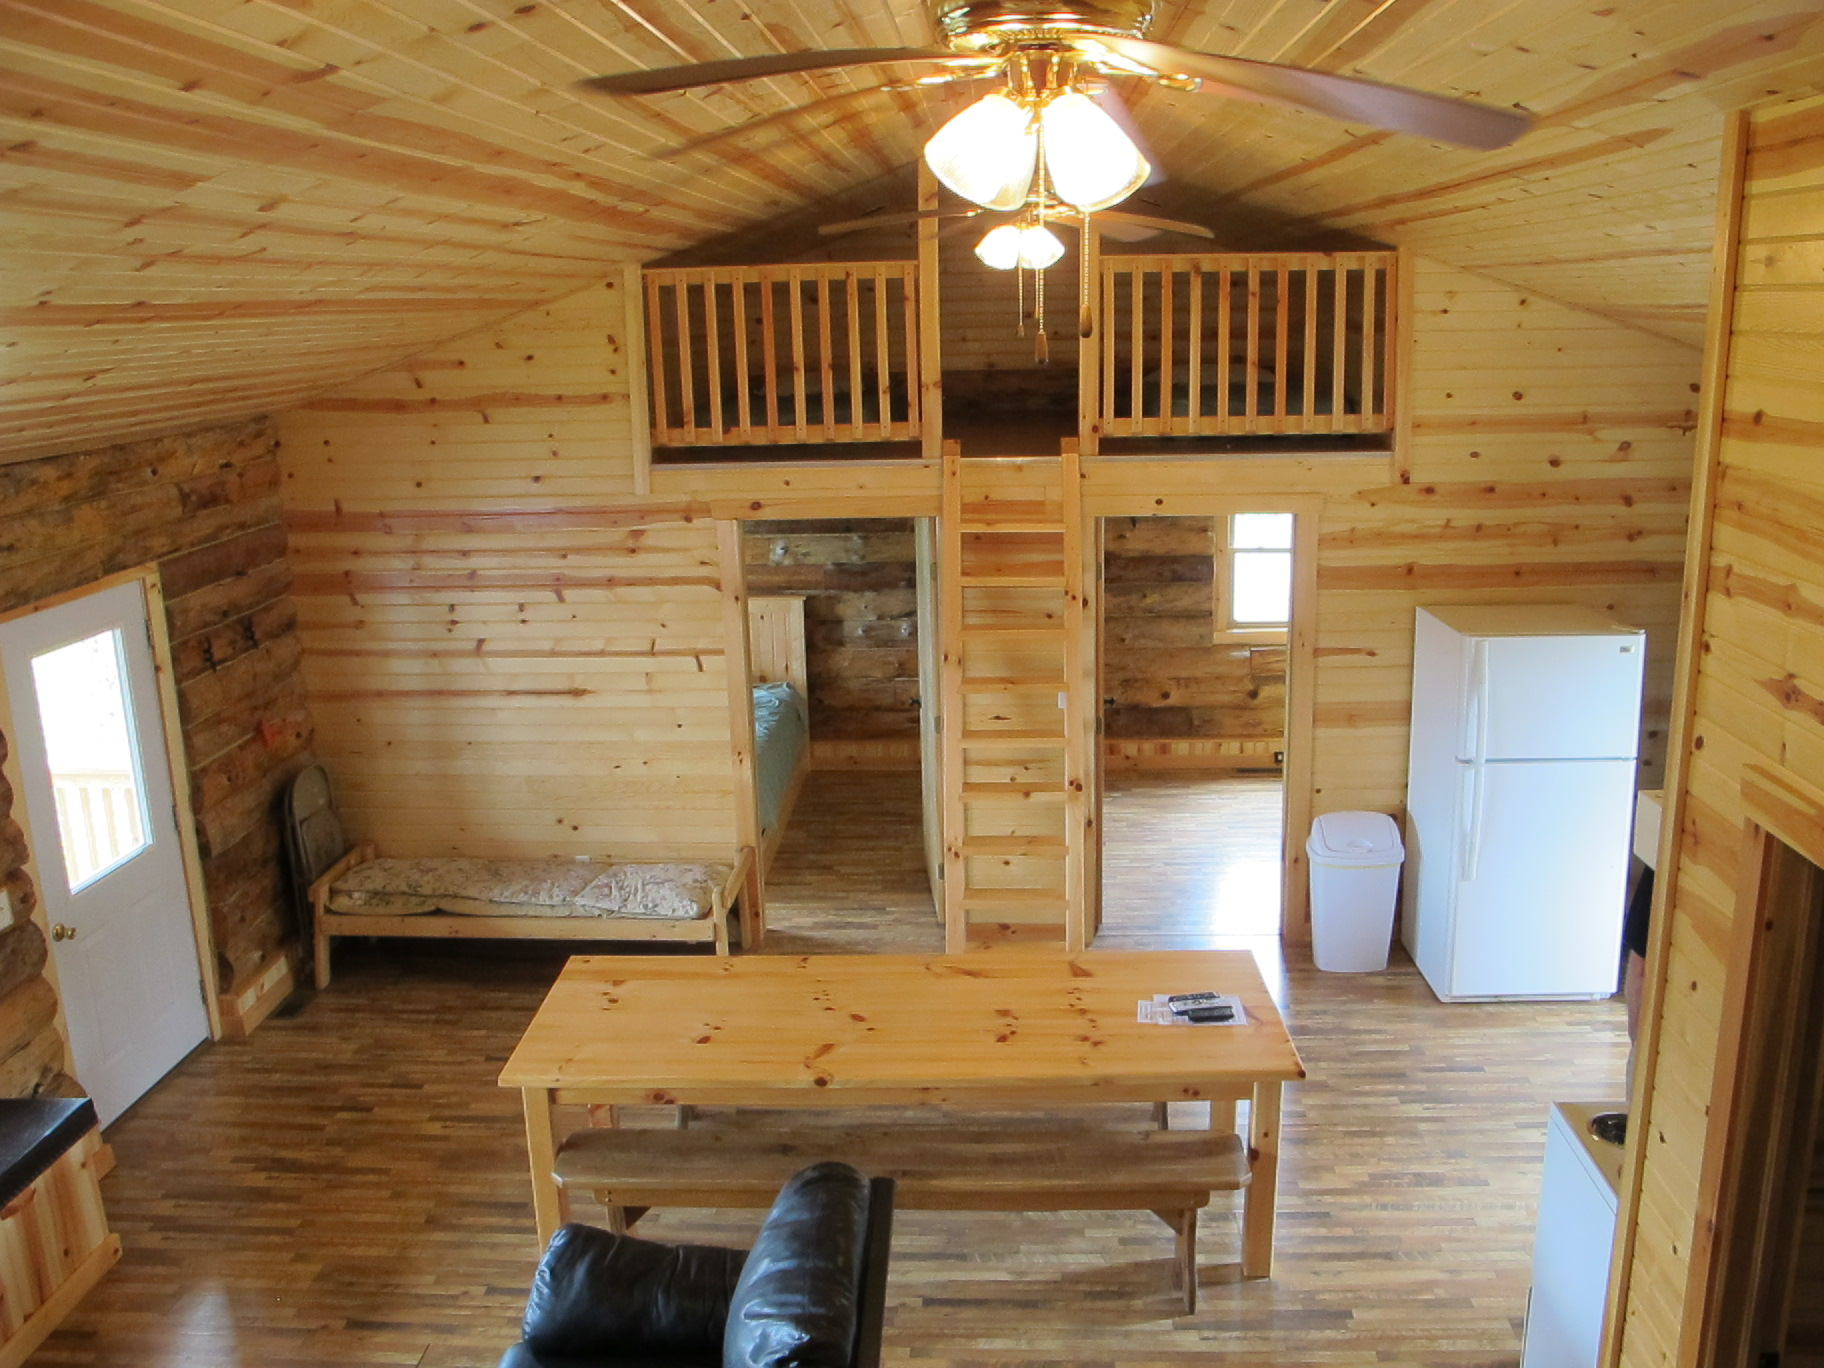 com cabin x junebug ohio cheap of cabins in sickchickchic att rentals photo ceiling